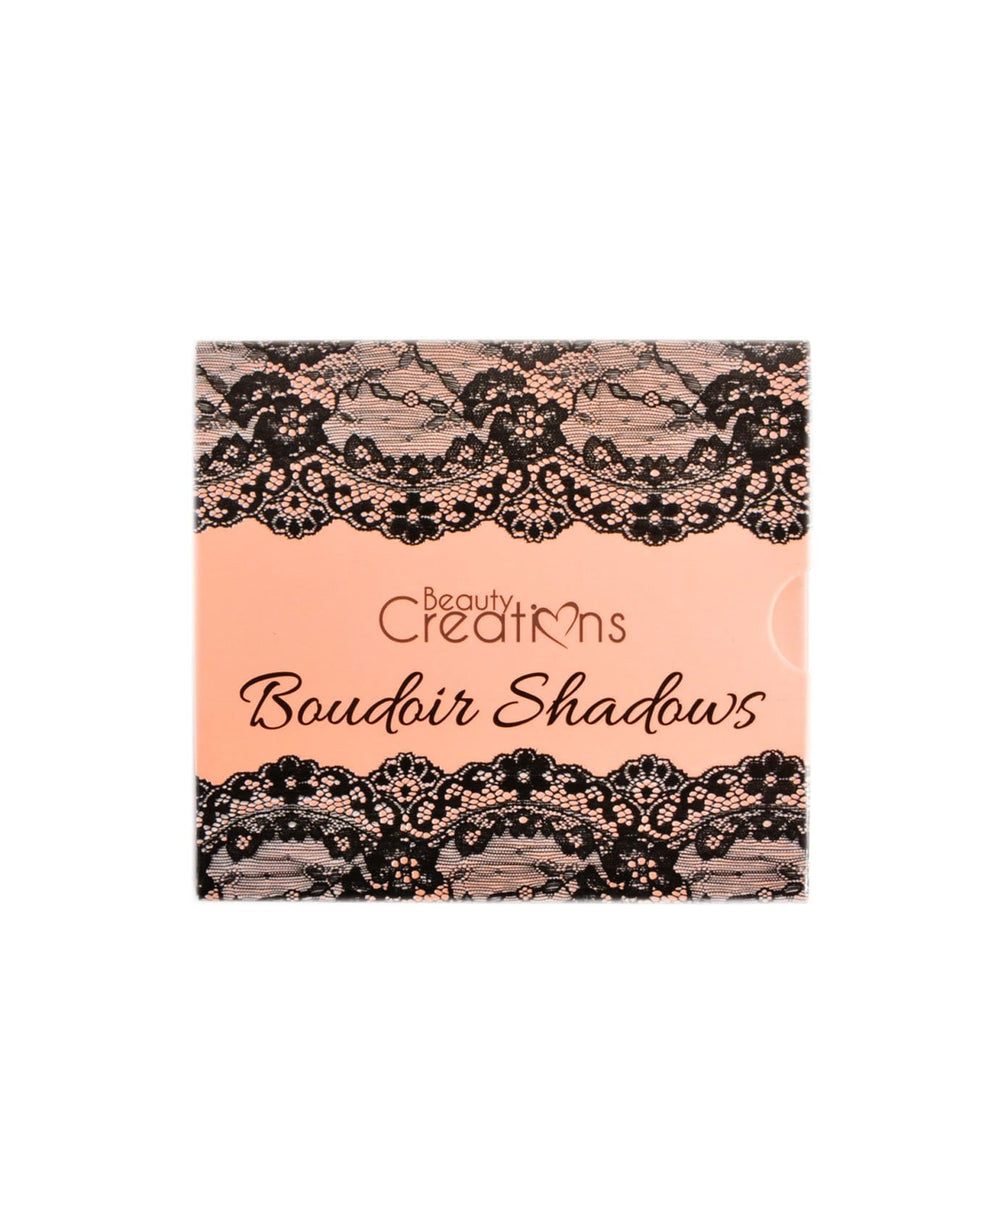 Beauty Creations Boudoir Shadows - A - 9 Shade Eyeshadow Palette